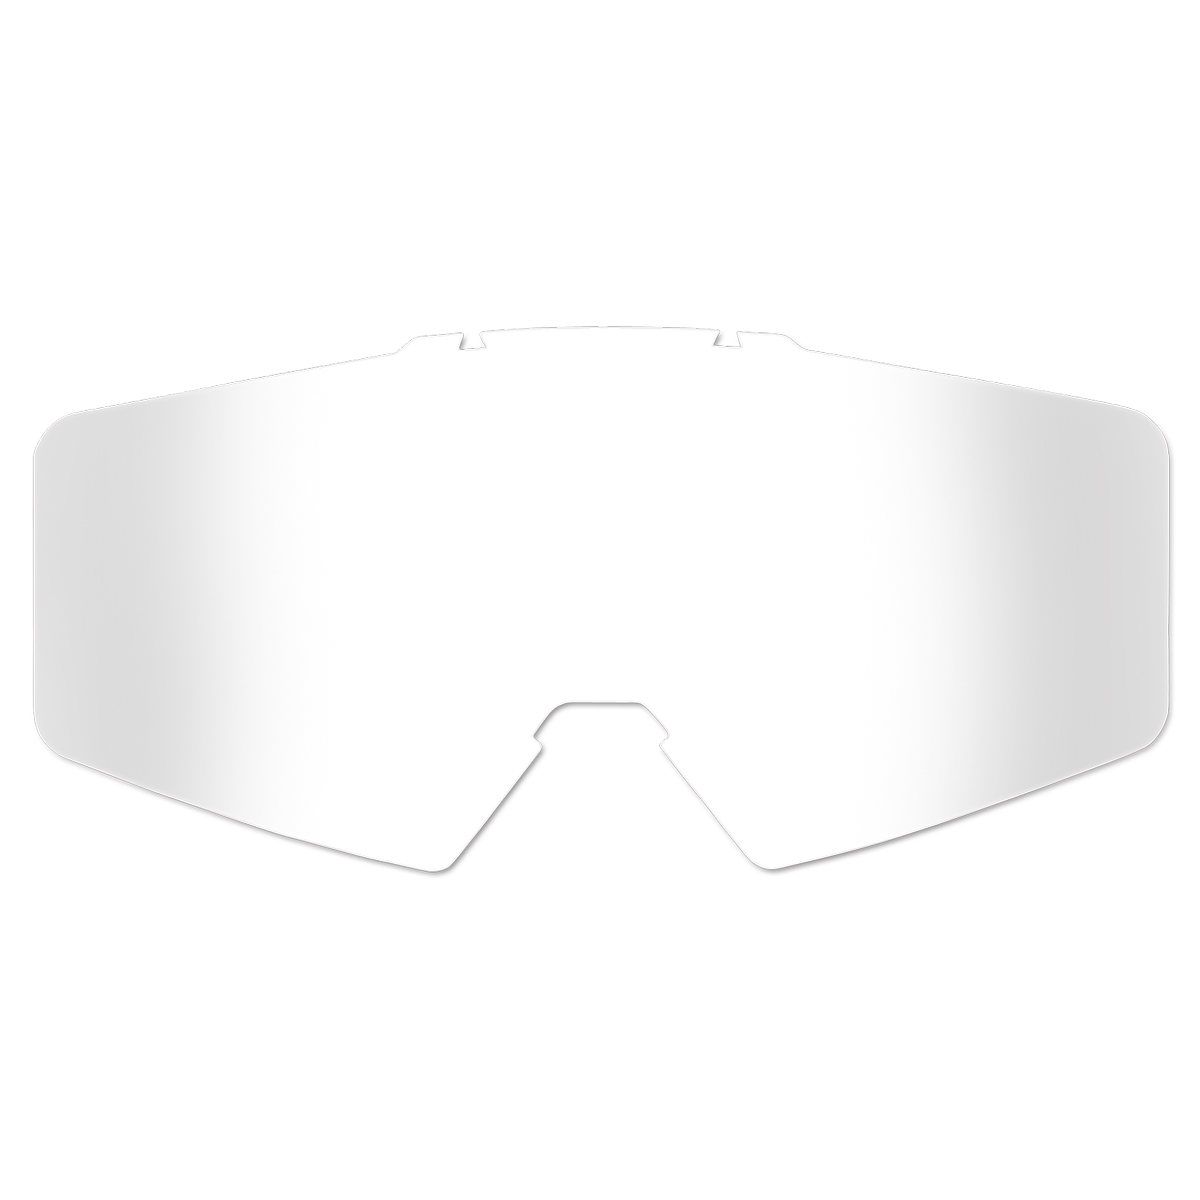 IGNITION/THROTTLE GOGGLE REPAIR PARTS SINGLE LENS